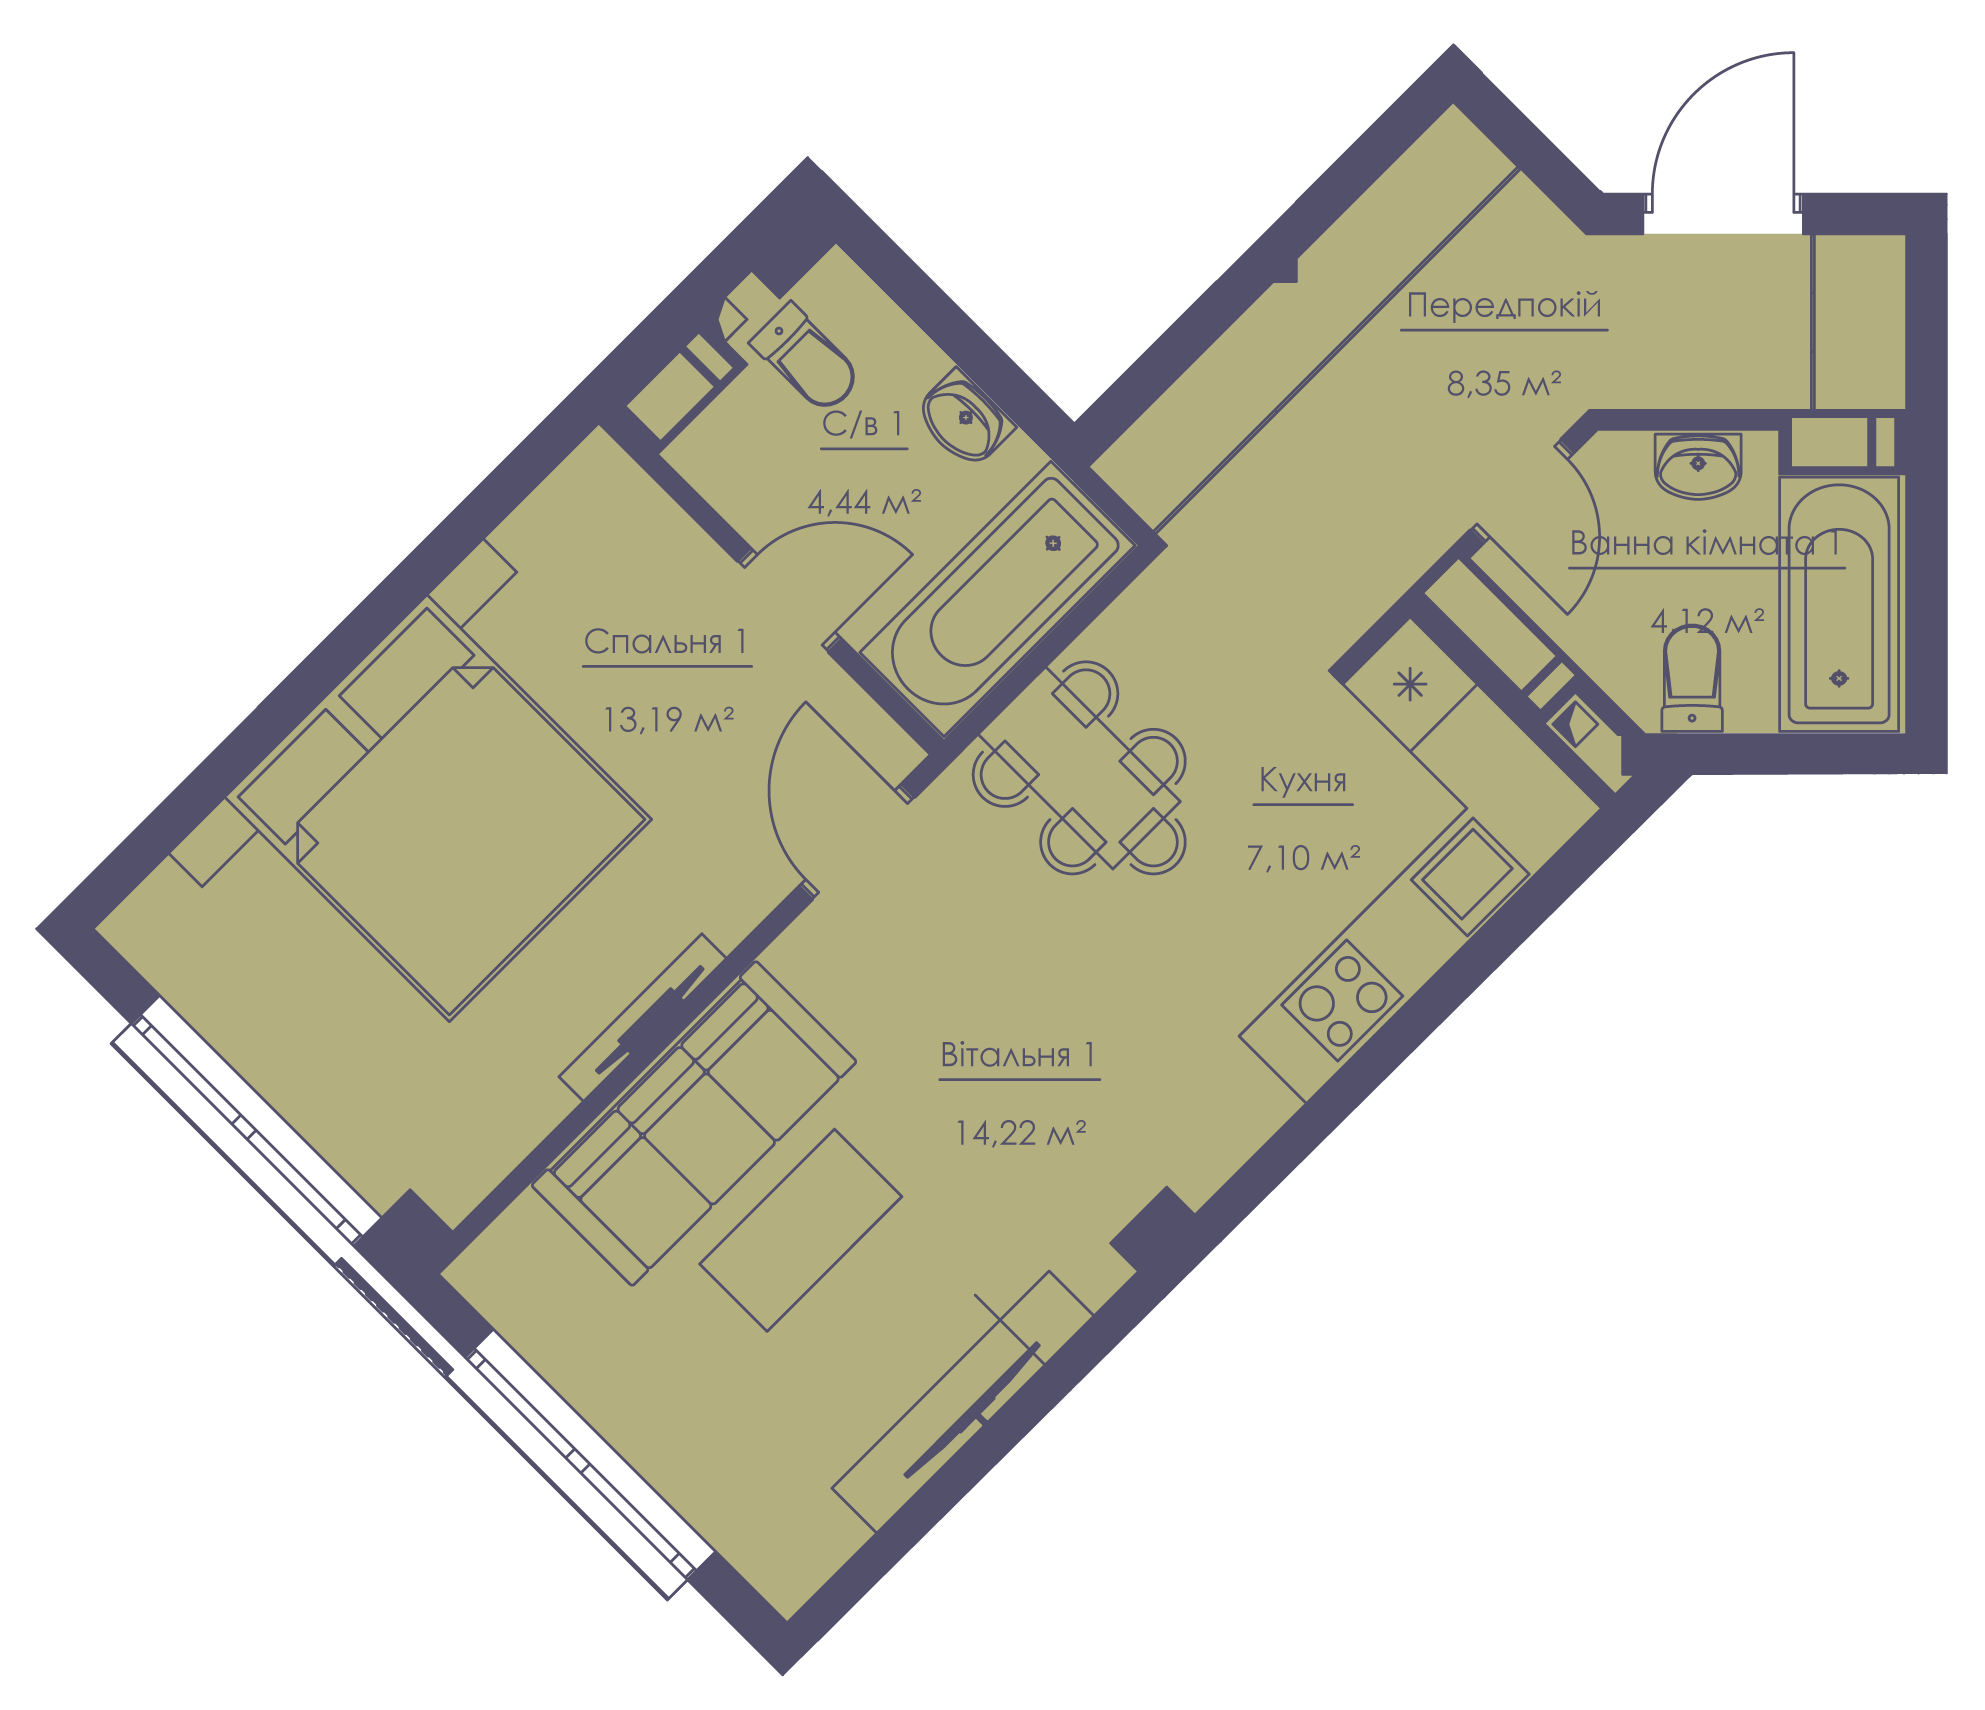 Apartment layout KV_27_1.2m_1_1_3-1